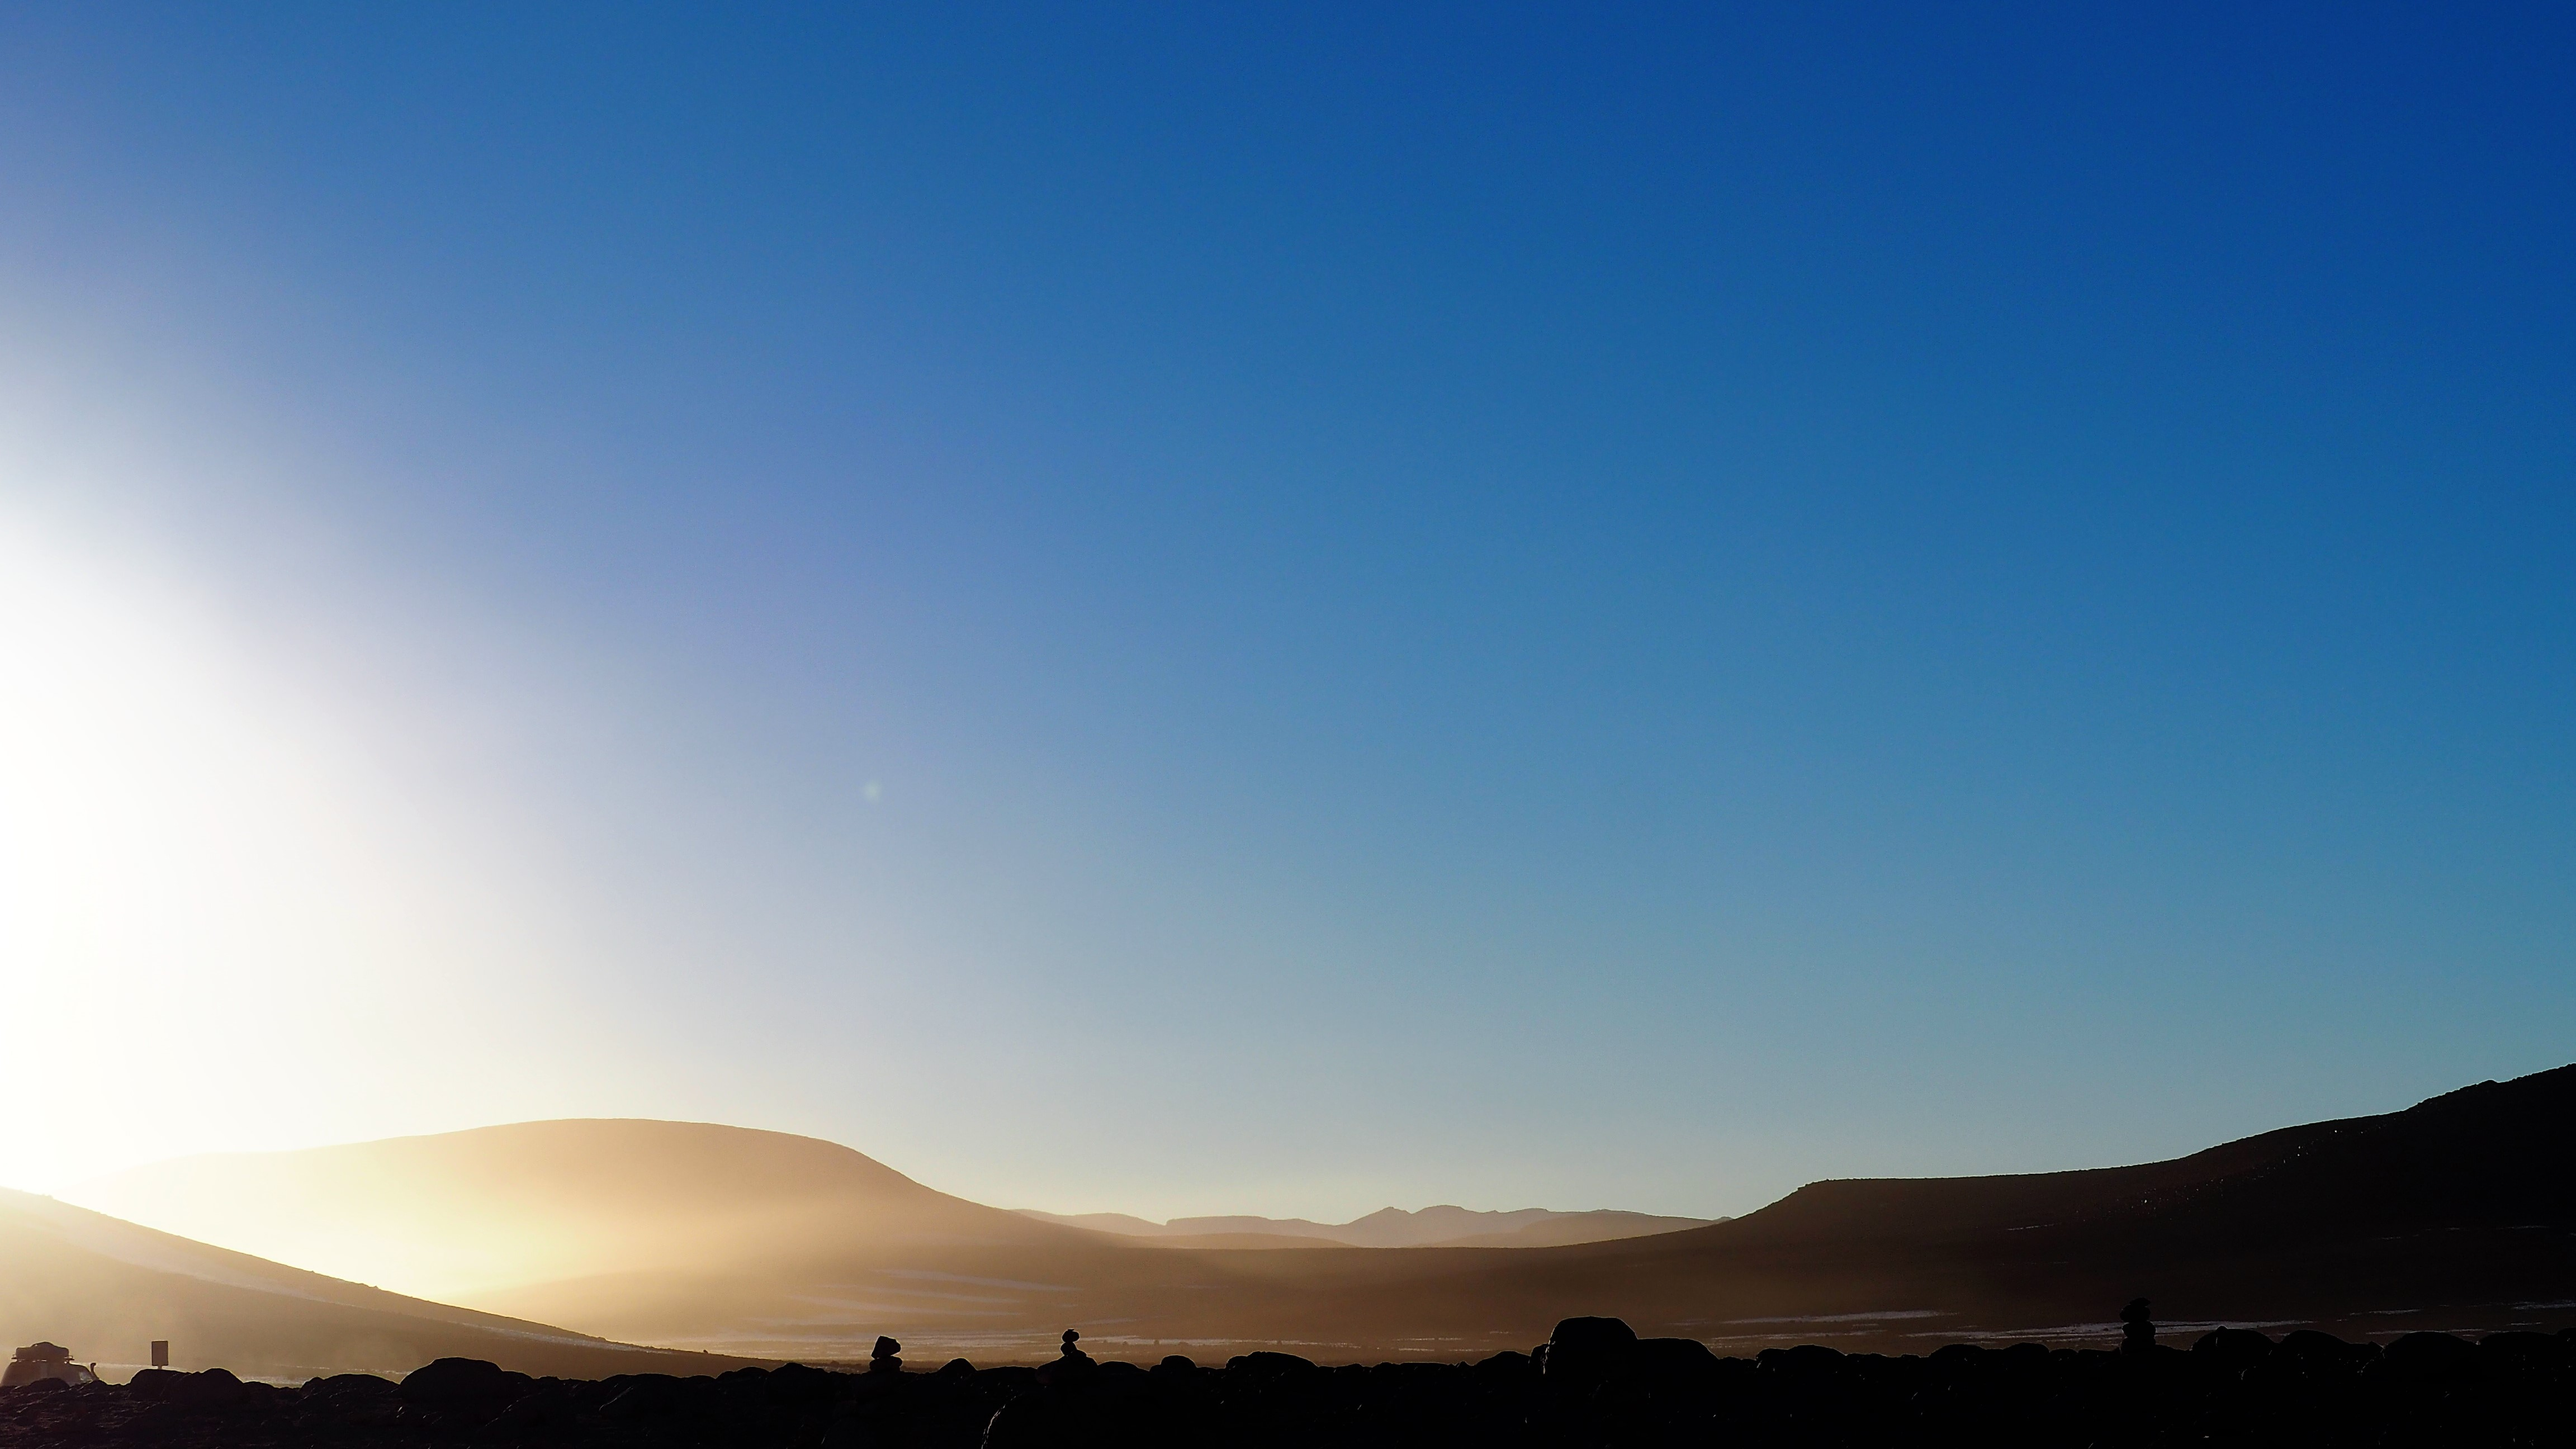 morning on the altiplano desert